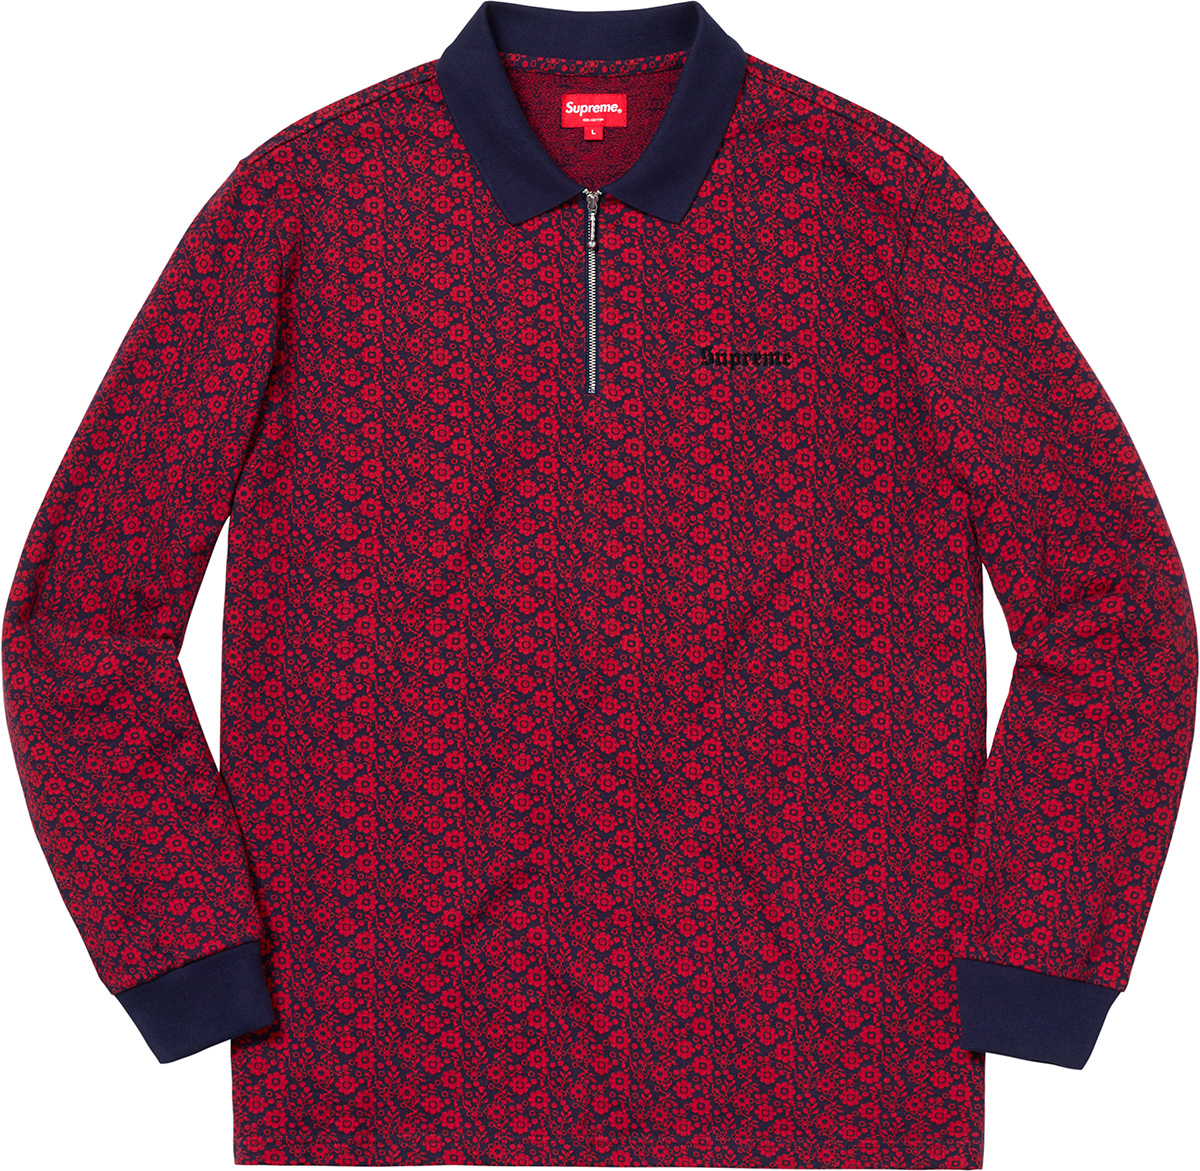 supreme-18aw-fall-winter-floral-jacquard-zip-l-s-polo